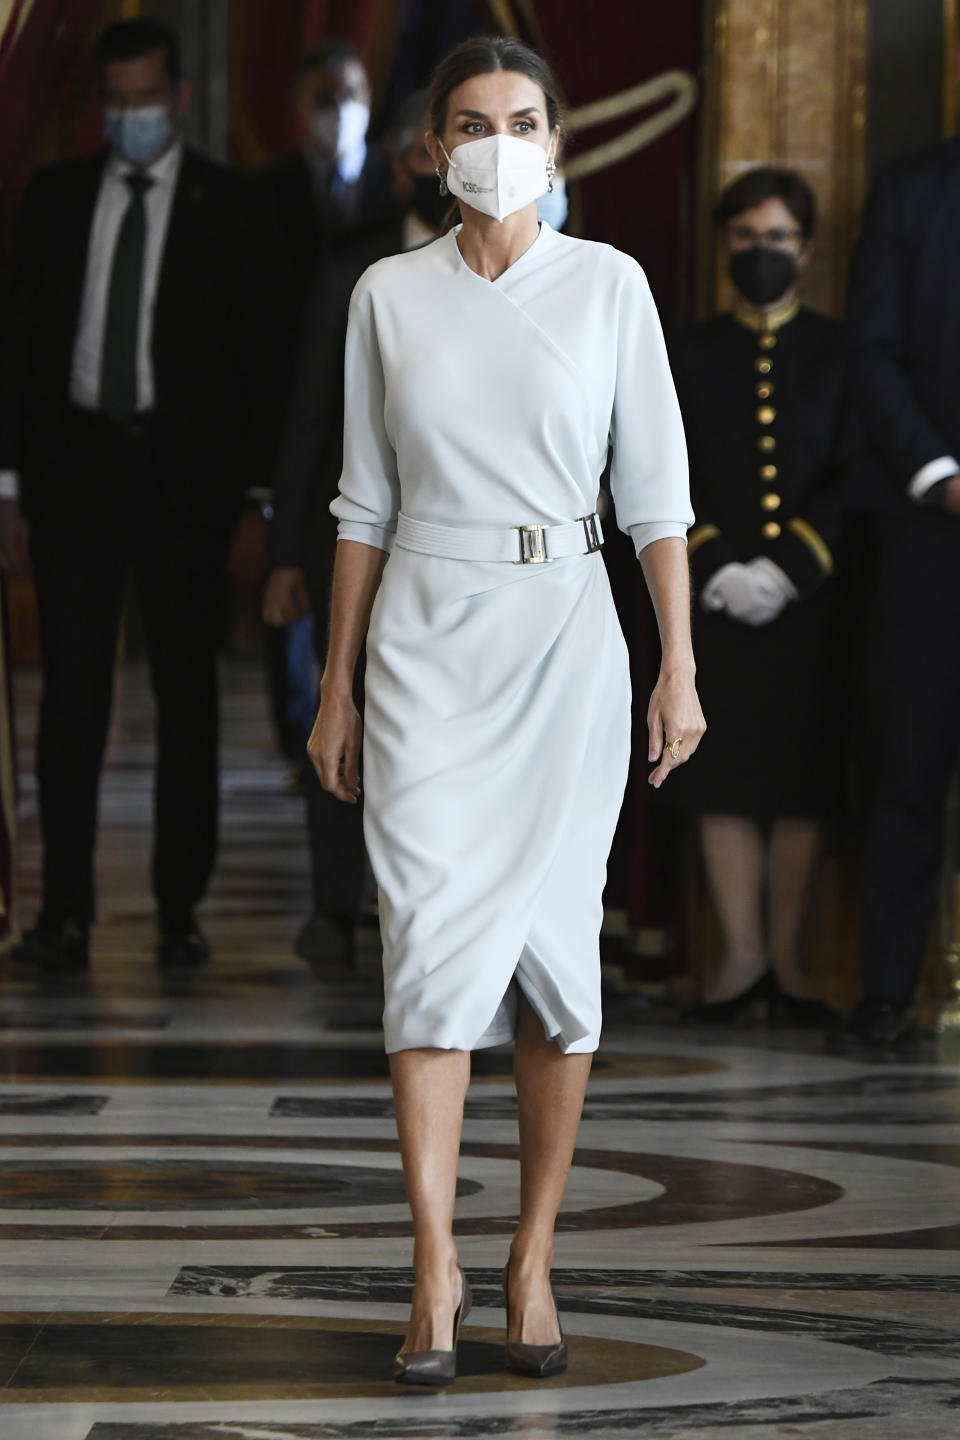 MADRID, SPAIN - OCTOBER 12: Queen Letizia of Spain attends a reception during the National Day at the Royal Palace on October 12, 2021 in Madrid, Spain. (Photo by Carlos Alvarez/Getty Images)